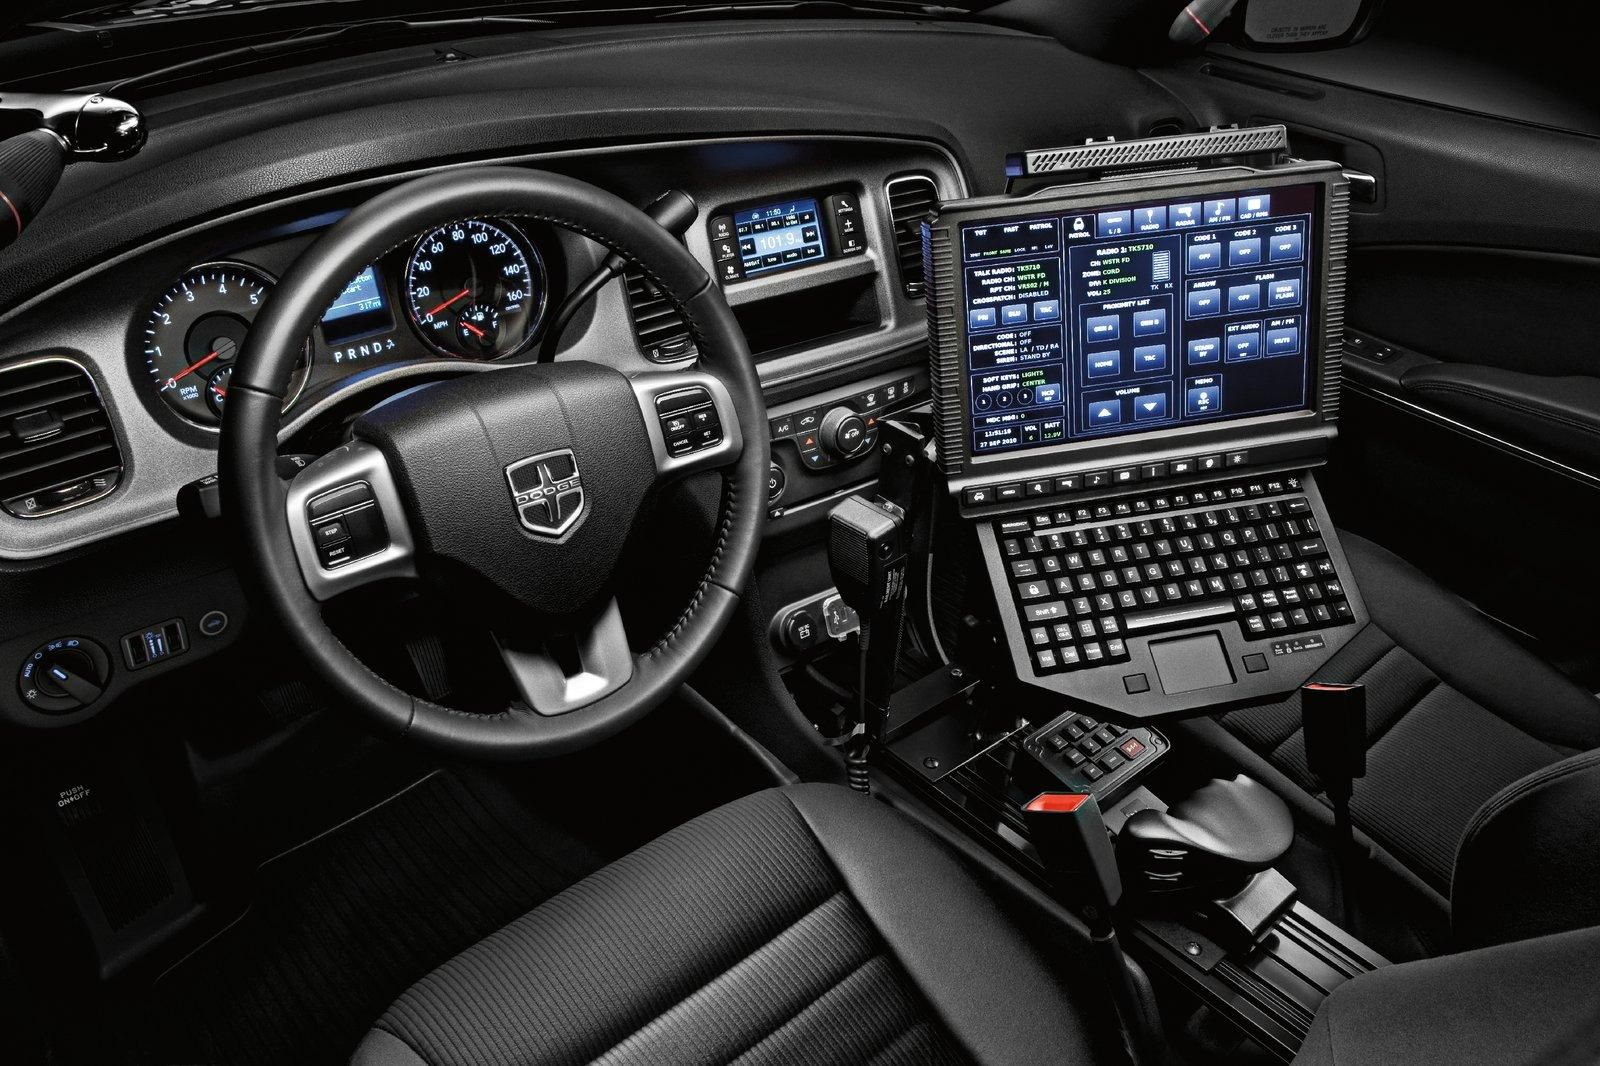 2012 Dodge Charger Pursuit Police Vehicle Interior Car Interiors